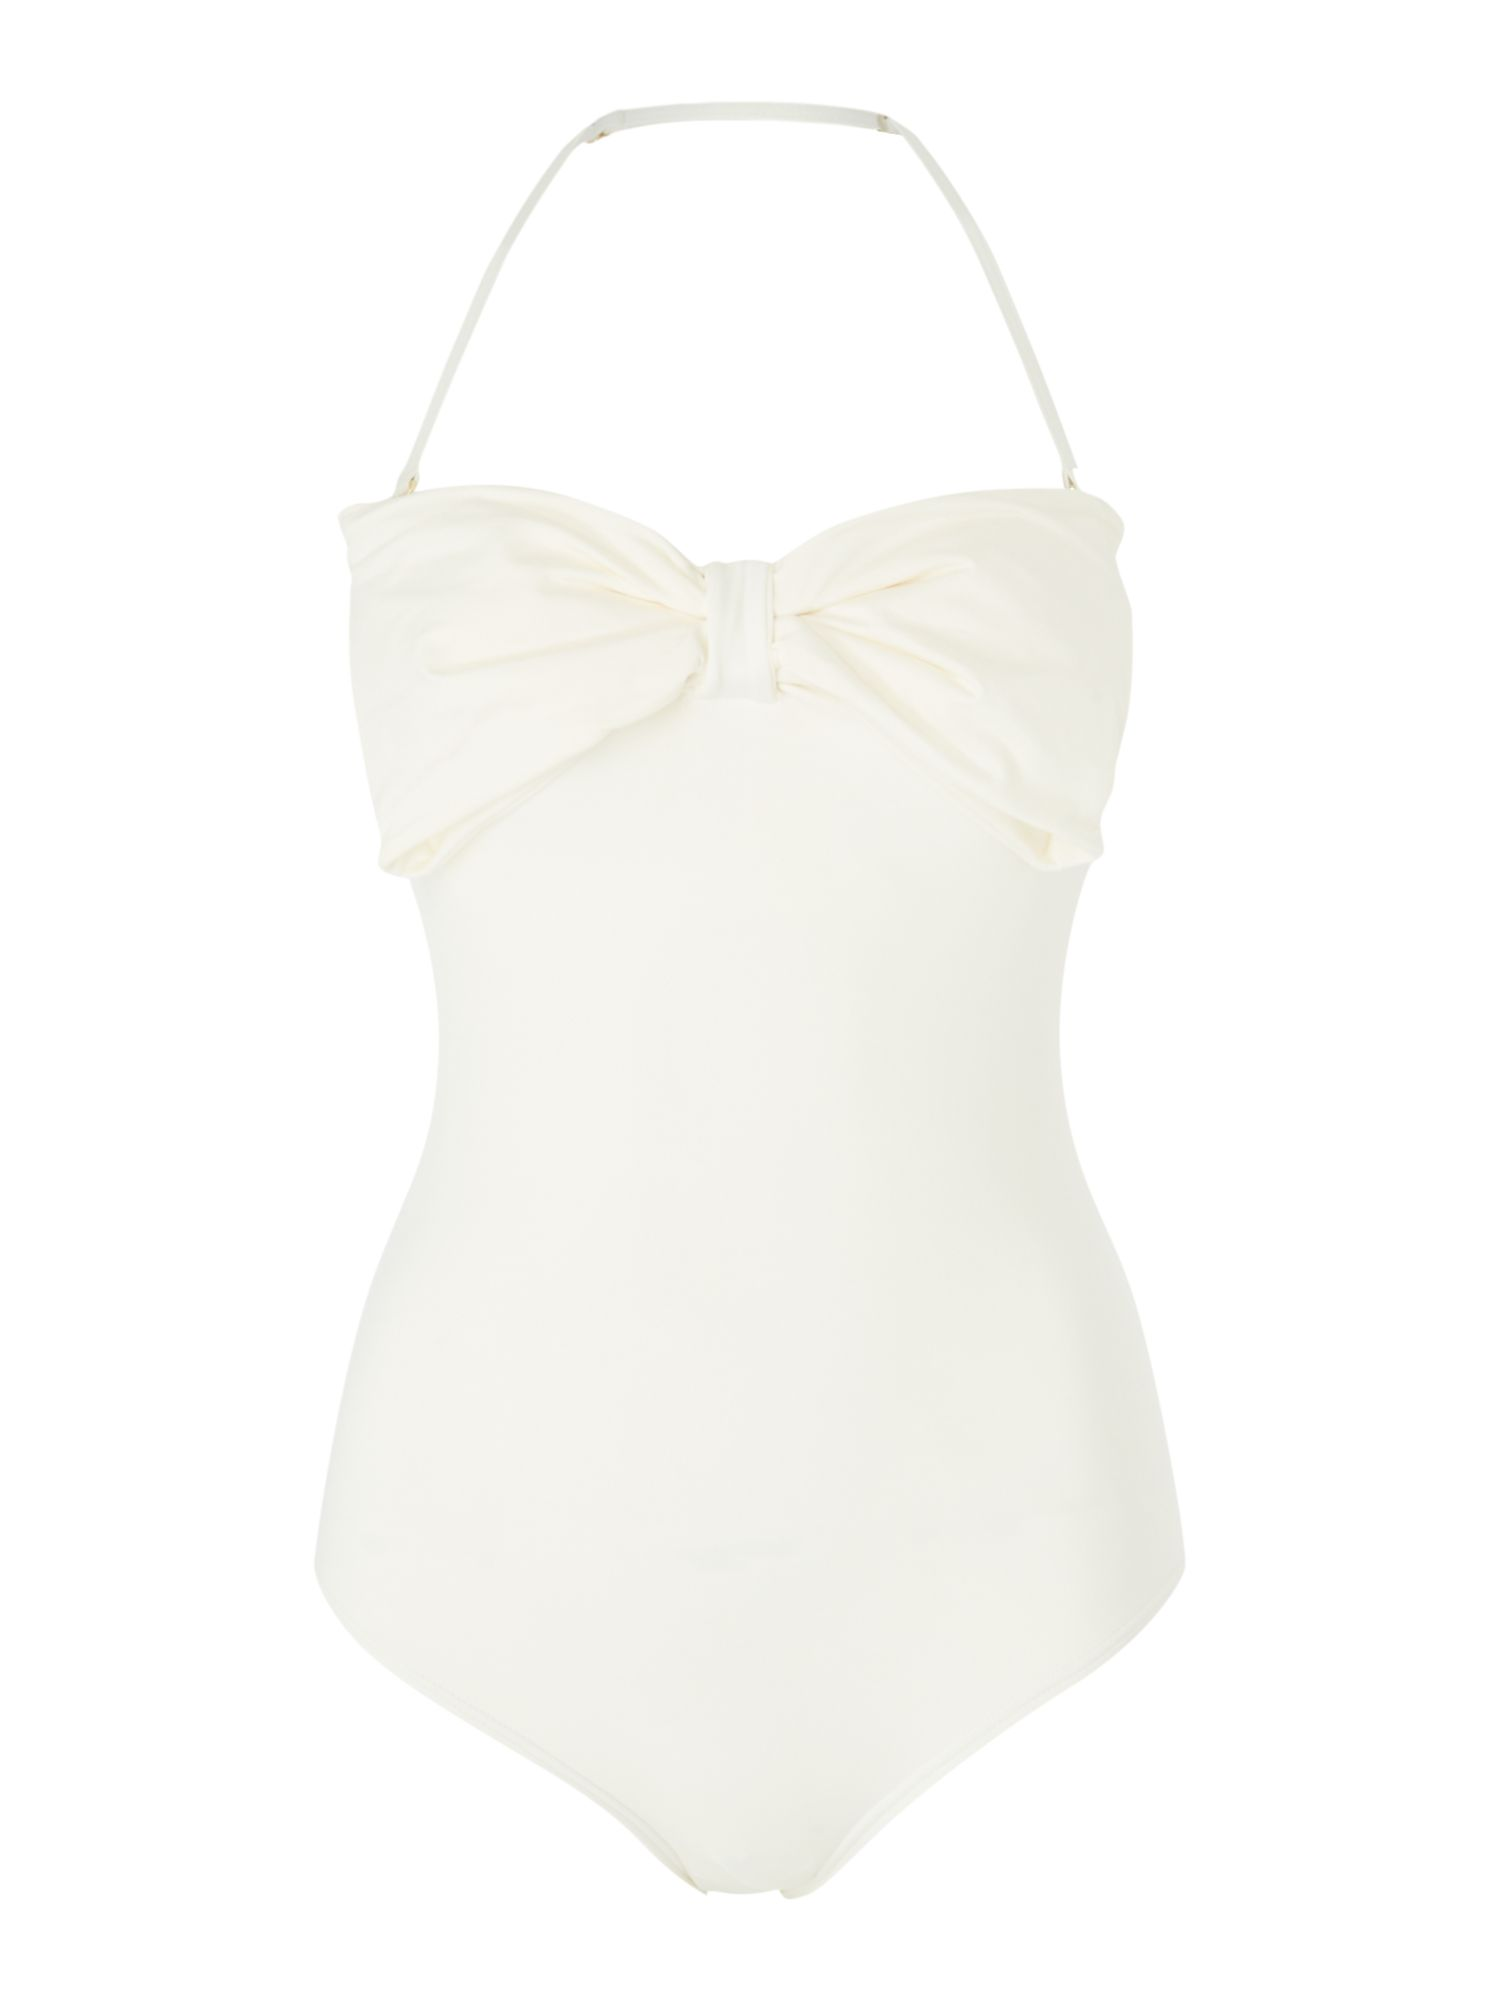 Kate Spade New York Bandeau bow swimsuit, Cream